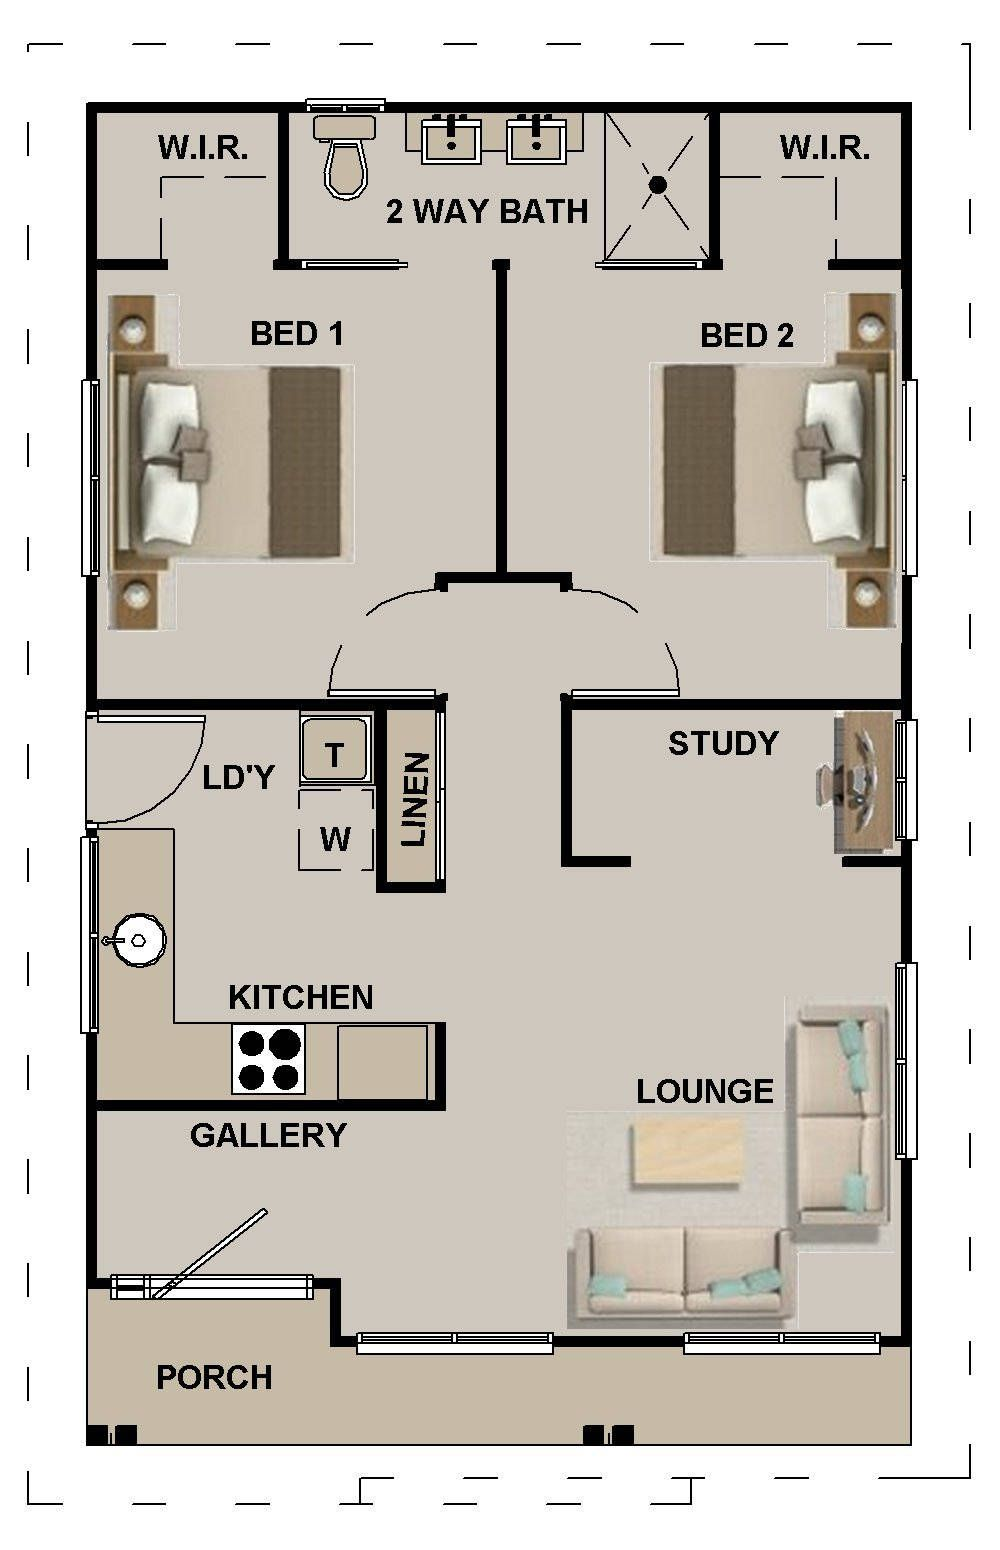 635 Sq Feet Or 59 8 M2 Hamptons Style 2 Bedroom Granny Flat Etsy Small House Floor Plans Tiny House Floor Plans Small House Design